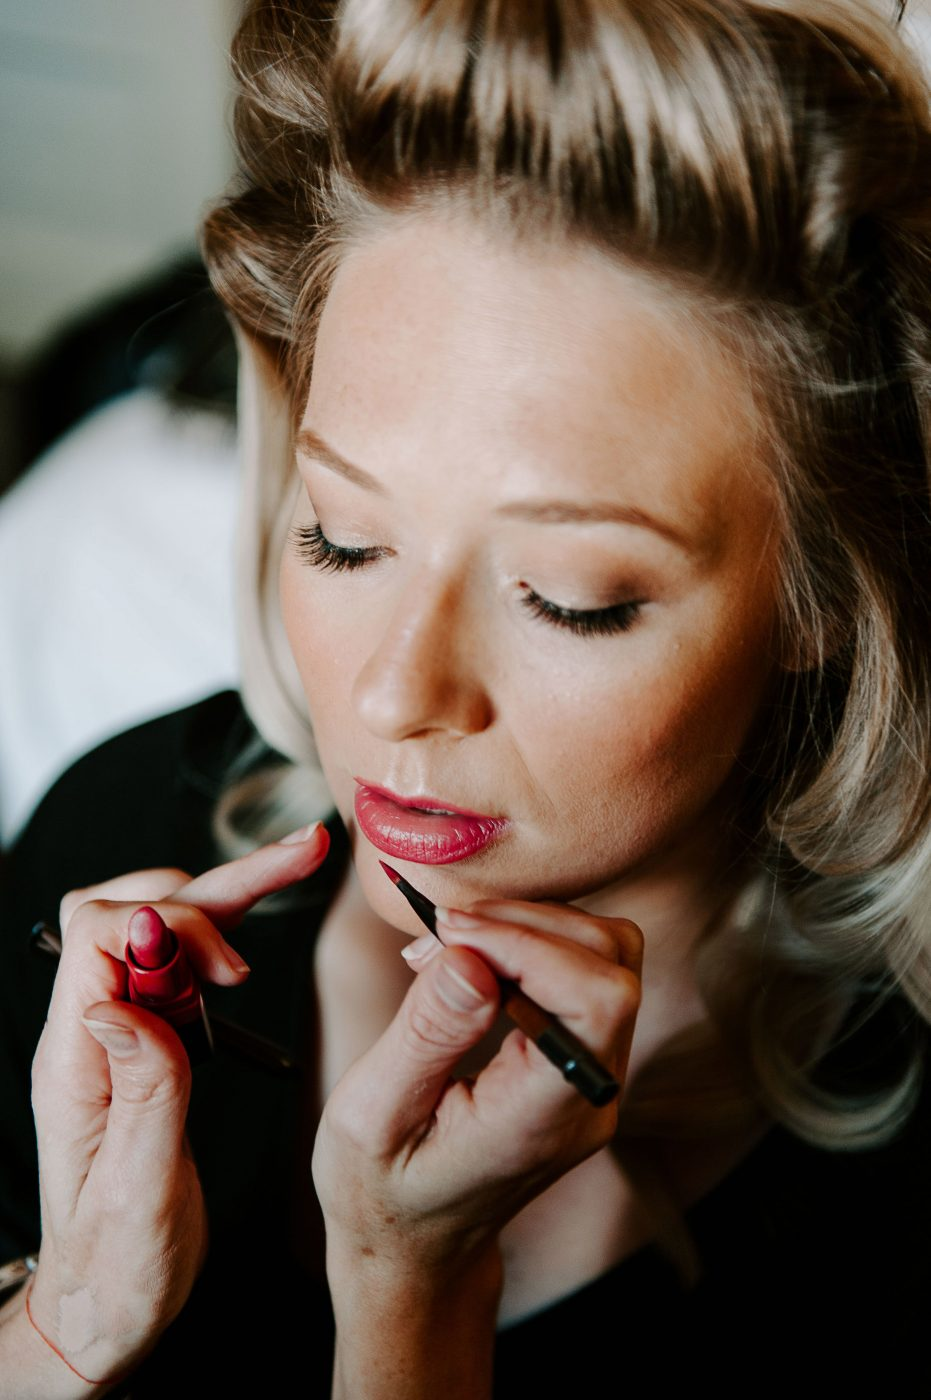 Best Montreal MUA for Bride in Montreal - NADY MAKEUP